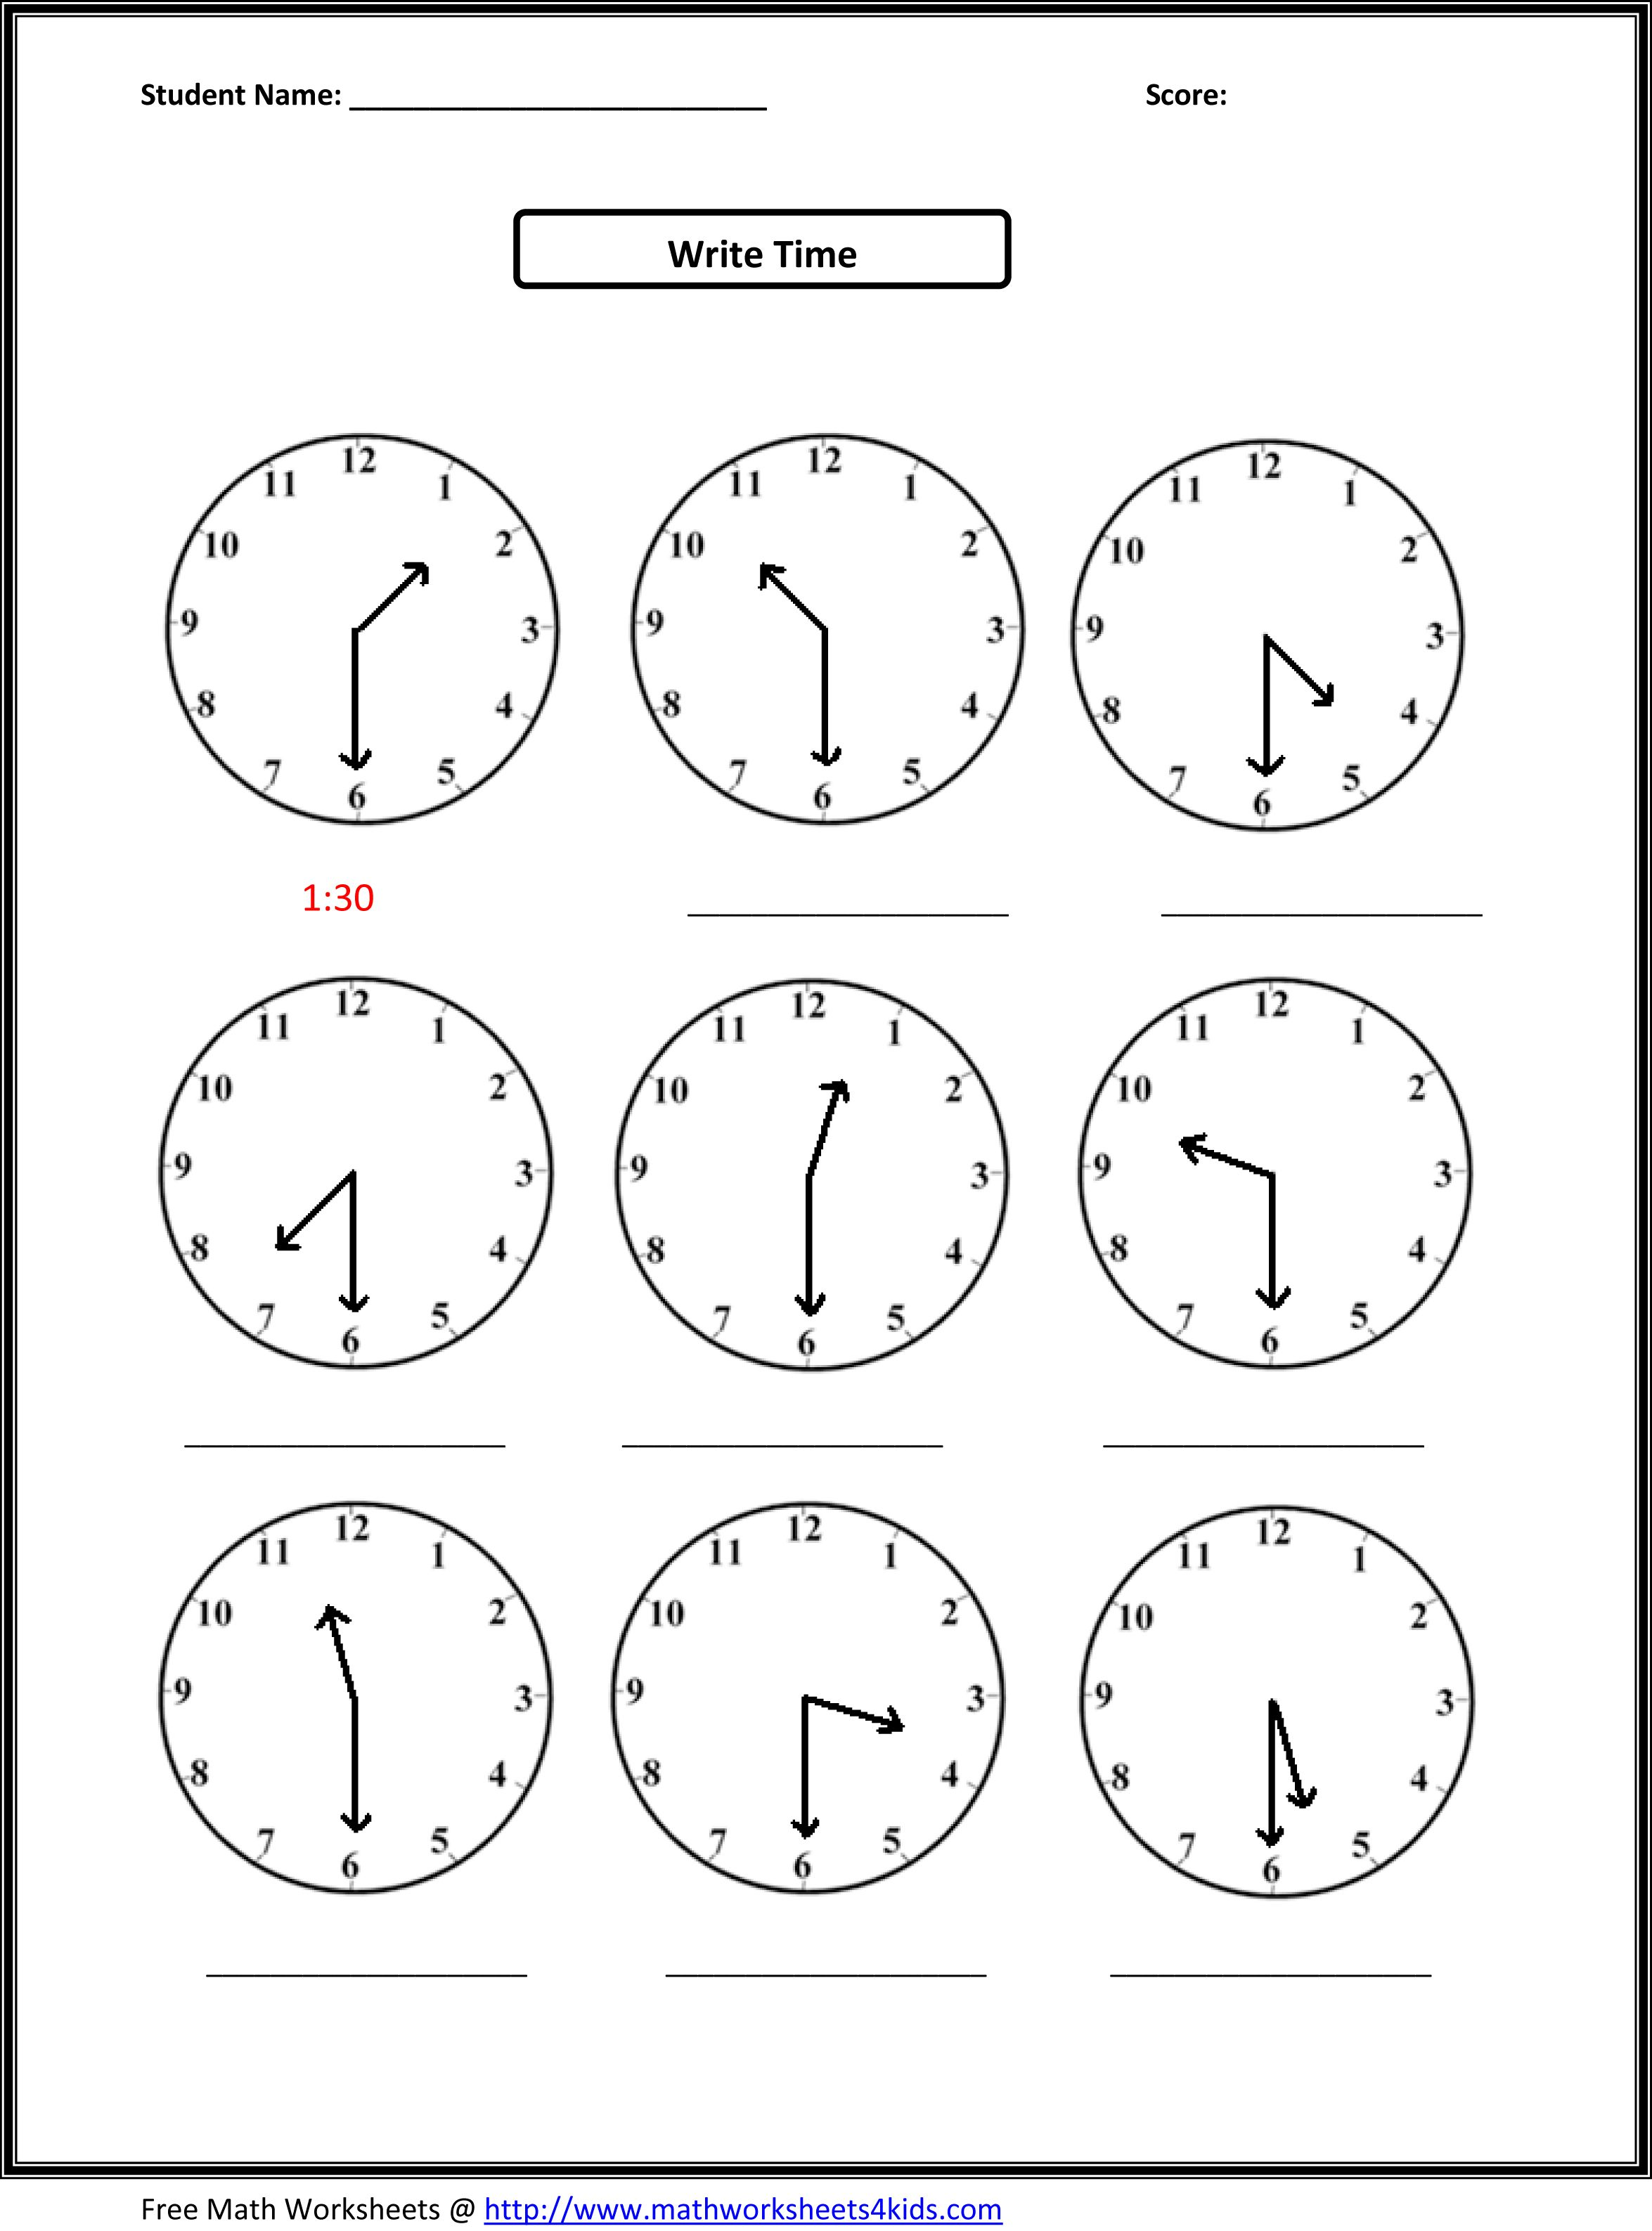 Weirdmailus  Terrific Worksheet On Time For Grade   Reocurent With Marvelous Free Printable Telling Time Worksheets Nd Grade  Reocurent With Beautiful Cellular Respiration And Photosynthesis Worksheet Also Causes Of The American Revolution Worksheet In Addition Sonnet Writing Worksheet And Calculations Using Significant Figures Worksheet As Well As Solving Equations By Adding Or Subtracting Worksheet Additionally English  Worksheets From Reocurentcom With Weirdmailus  Marvelous Worksheet On Time For Grade   Reocurent With Beautiful Free Printable Telling Time Worksheets Nd Grade  Reocurent And Terrific Cellular Respiration And Photosynthesis Worksheet Also Causes Of The American Revolution Worksheet In Addition Sonnet Writing Worksheet From Reocurentcom